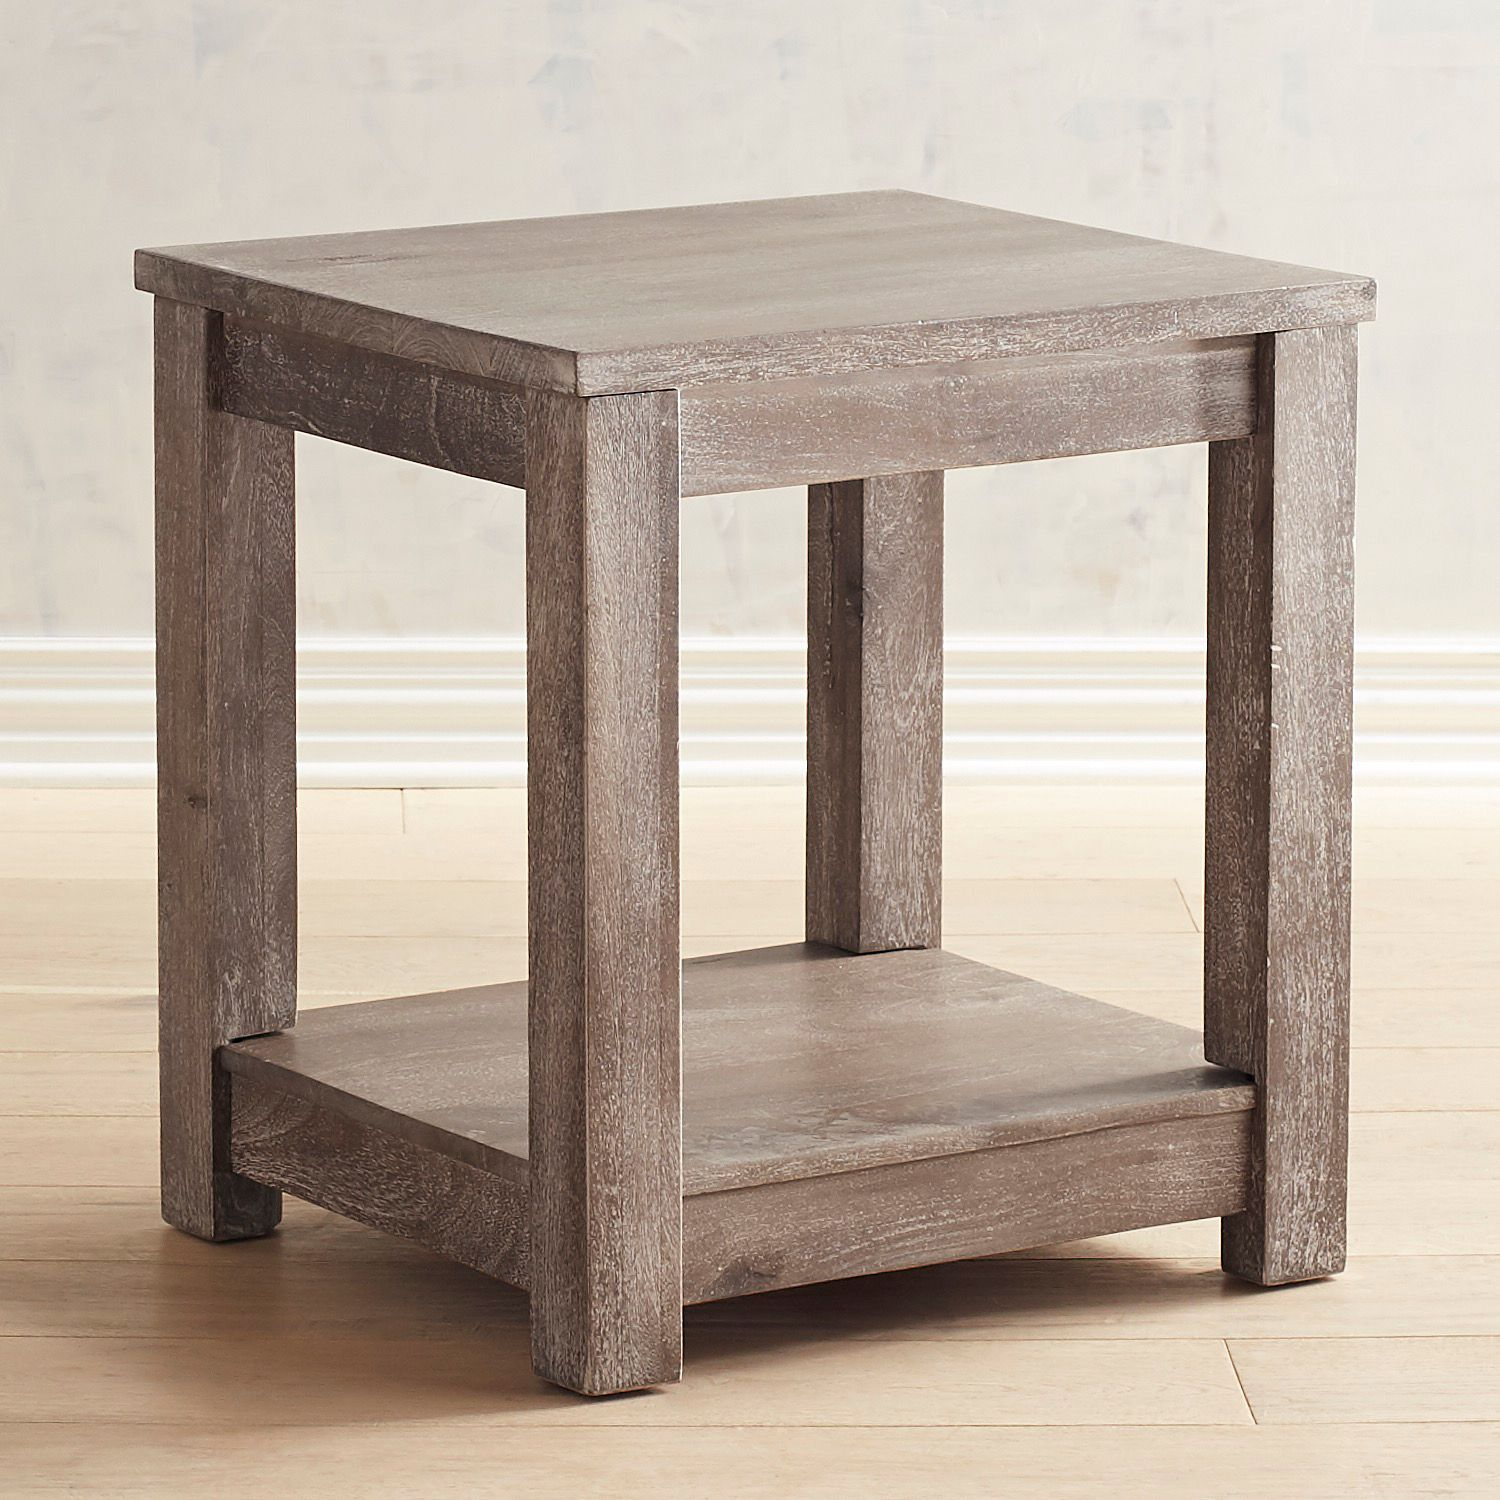 parsons truffle gray end table pier imports accent mango wood collection marble box coffee home goods tables covers for outdoor iron and chairs bath wedding registry mimosa